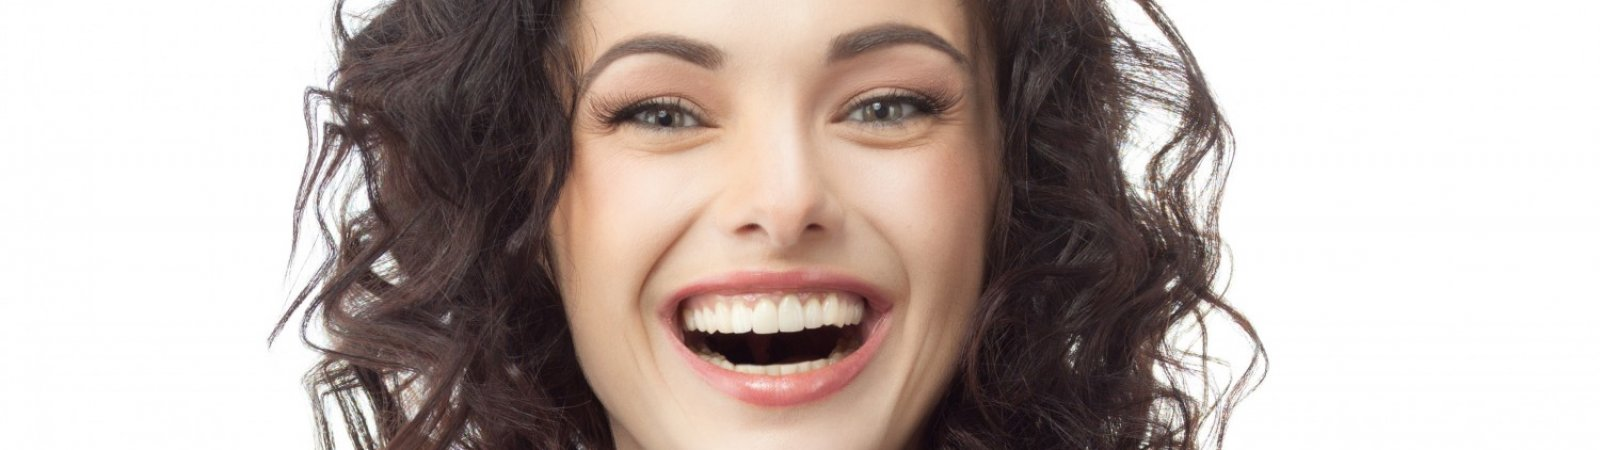 Non-Surgical Periodontal Therapy